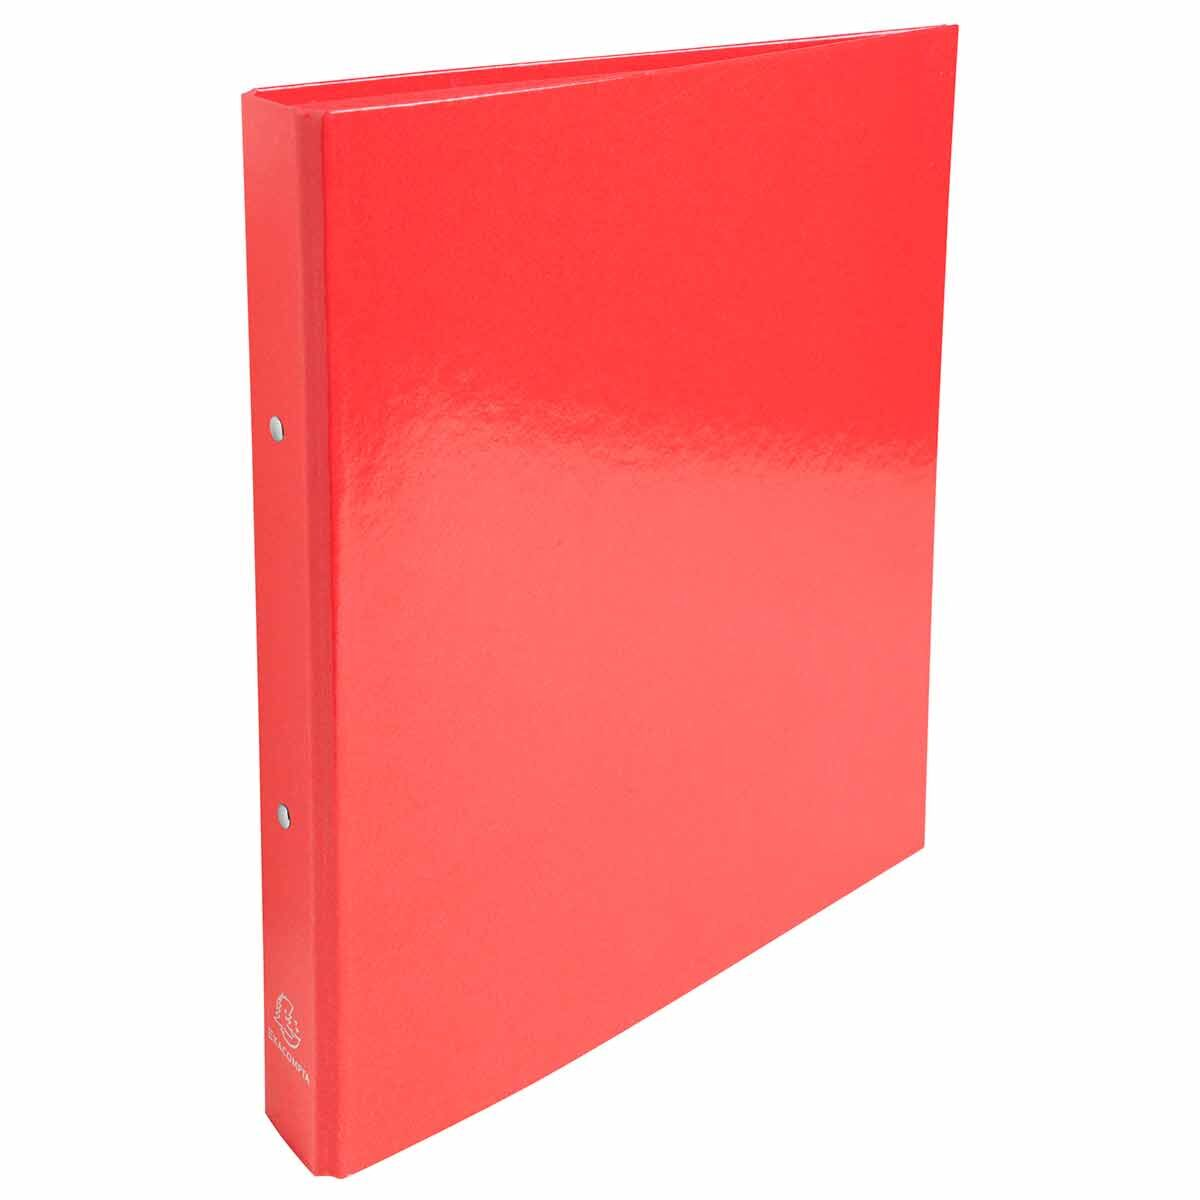 Exacompta Iderama Plastic Coated Ring Binder 2 Ring 30mm A4 Pack of 10 Red